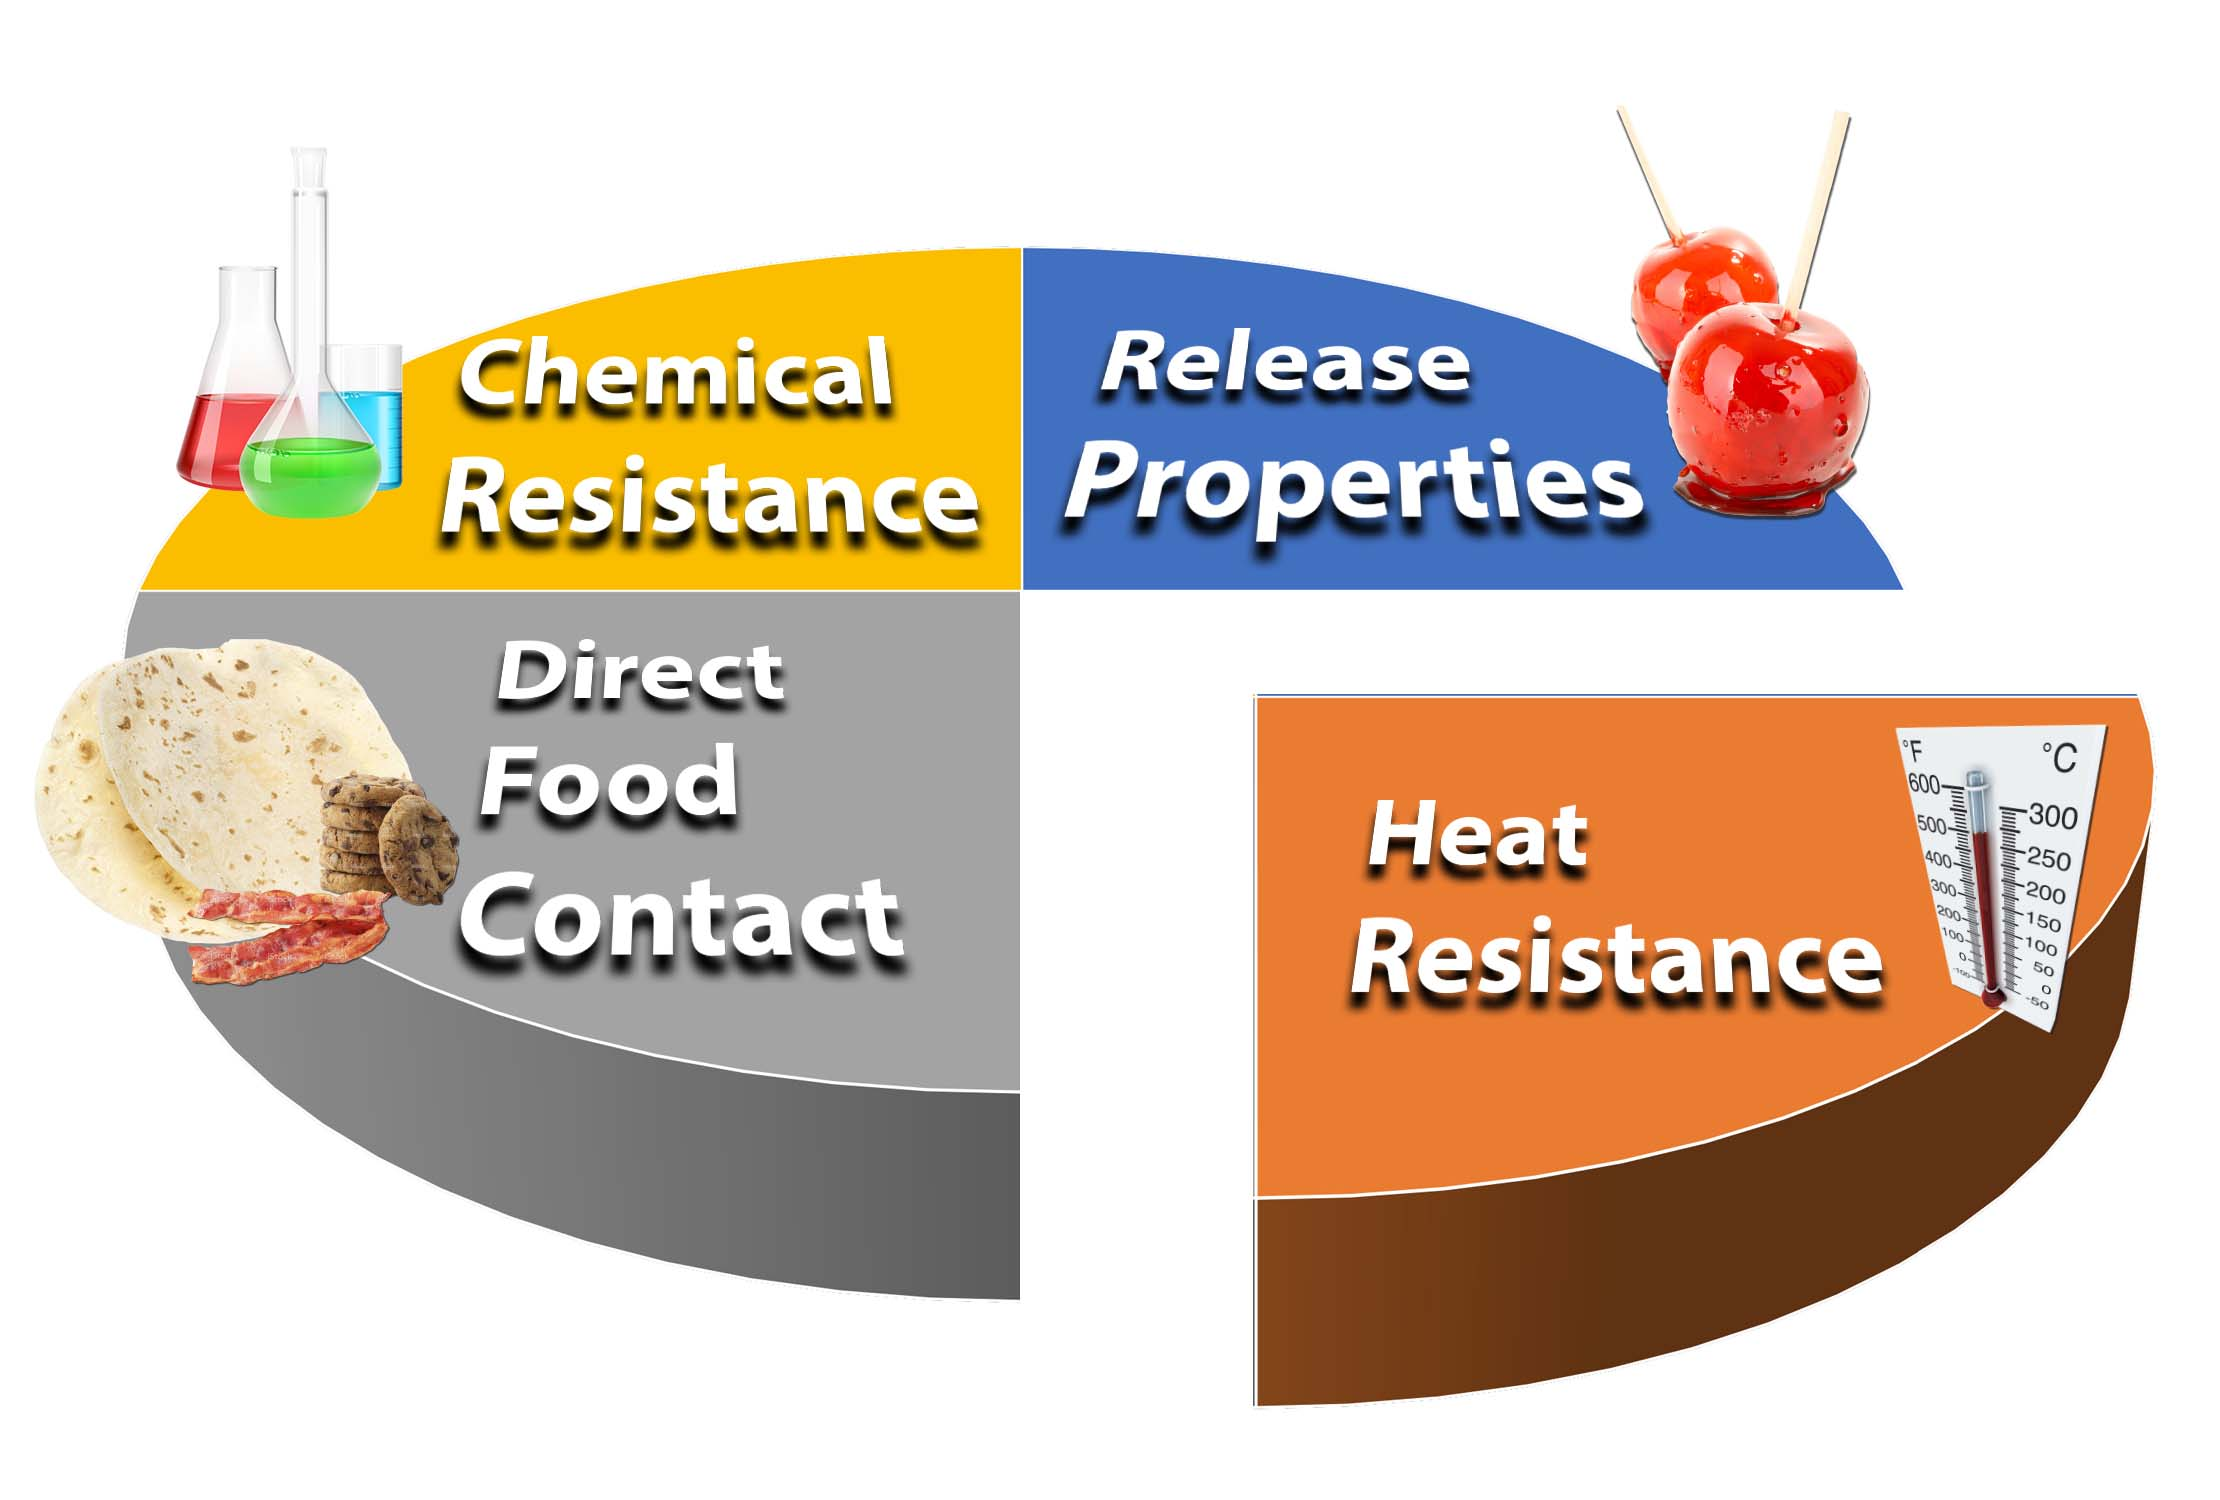 Uploaded Image: /uploads/Application Page Images/Pie Chart - Heat Resistance.jpg